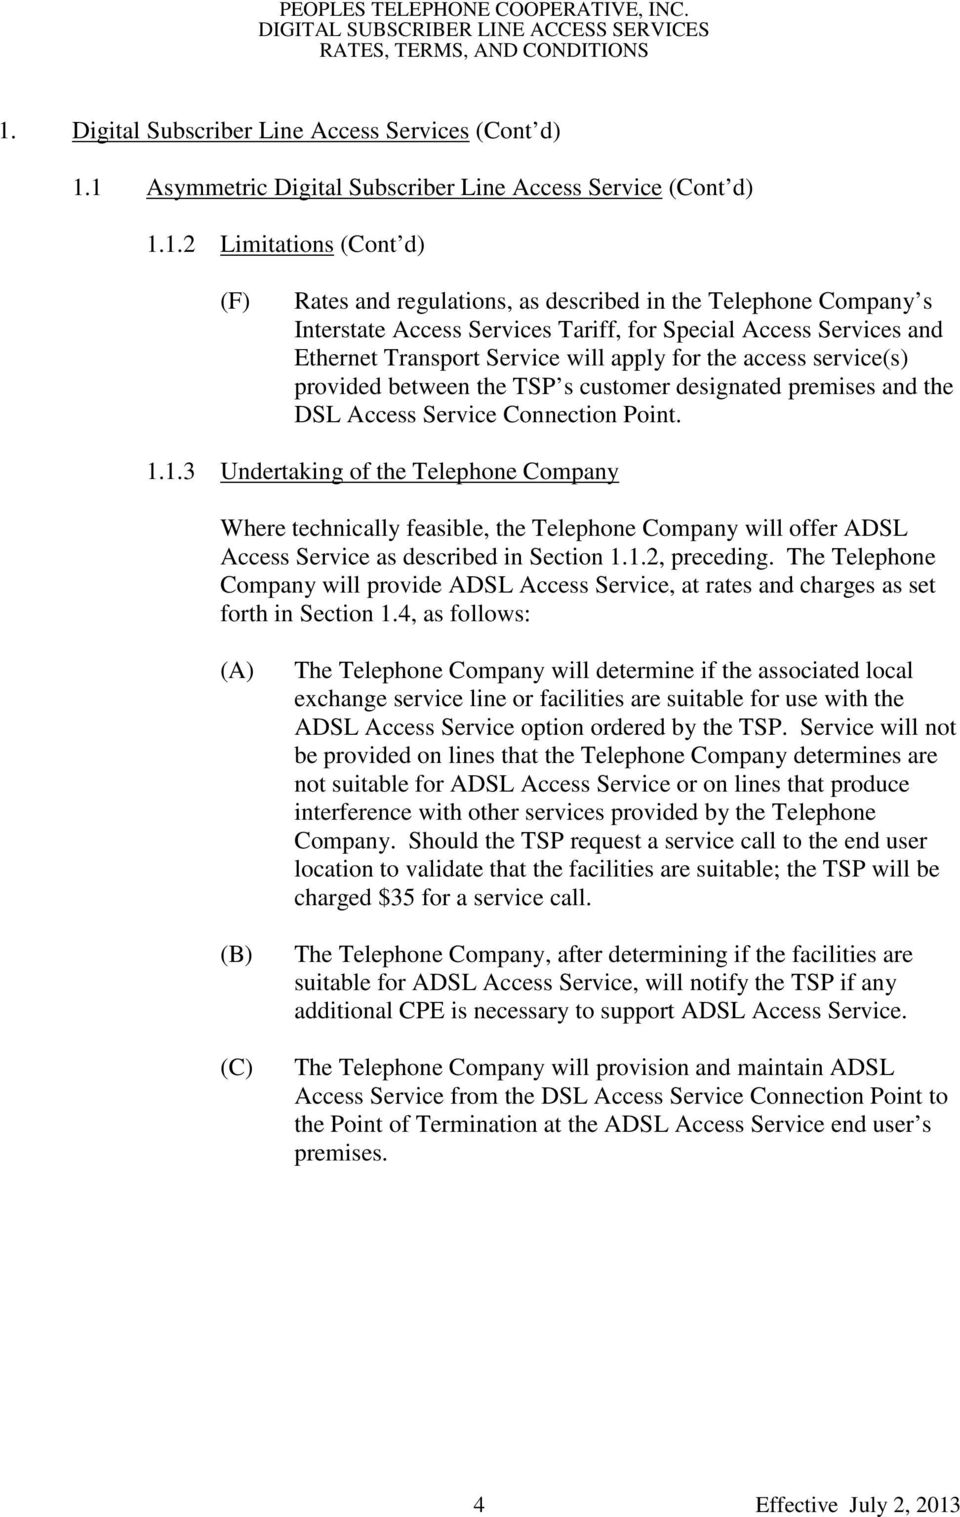 1.3 Undertaking of the Telephone Company Where technically feasible, the Telephone Company will offer ADSL Access Service as described in Section 1.1.2, preceding.